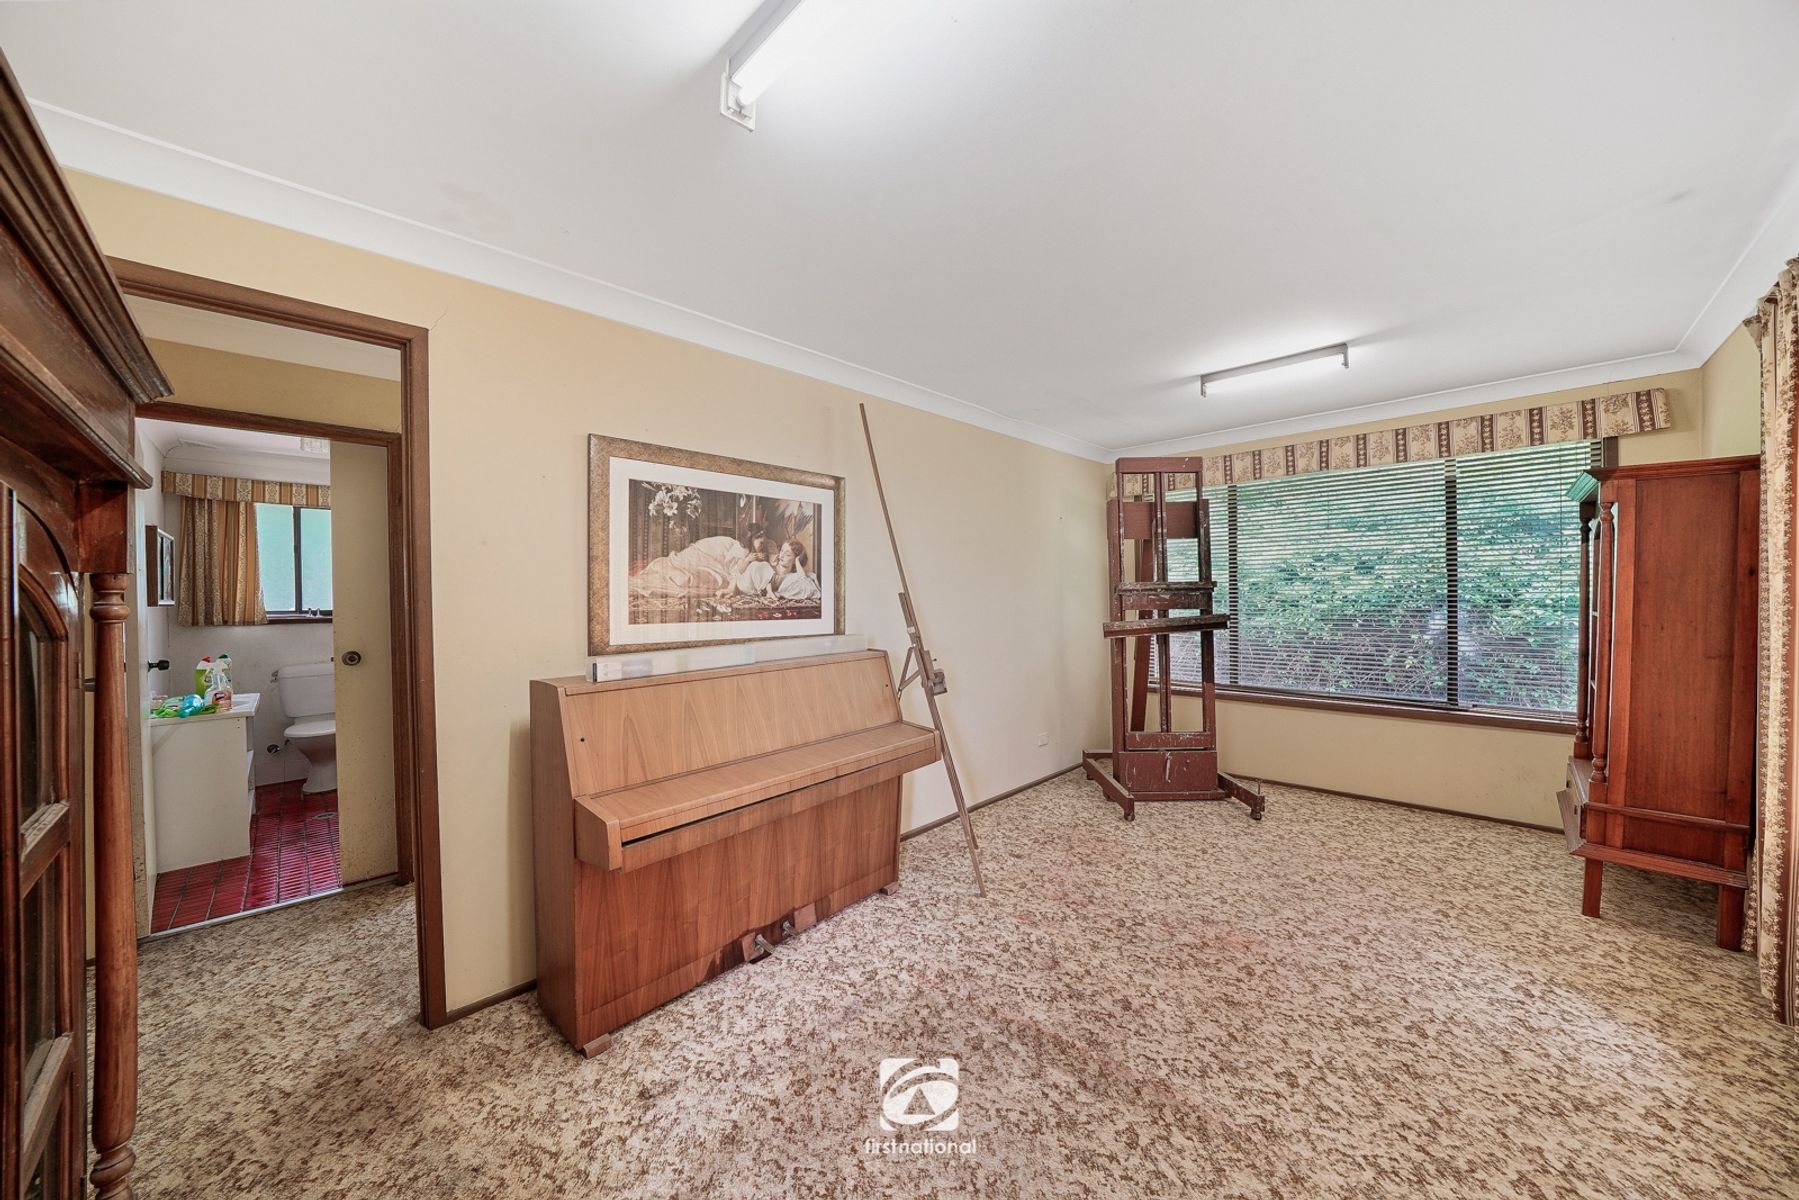 220 Montpelier Drive, The Oaks, NSW 2570